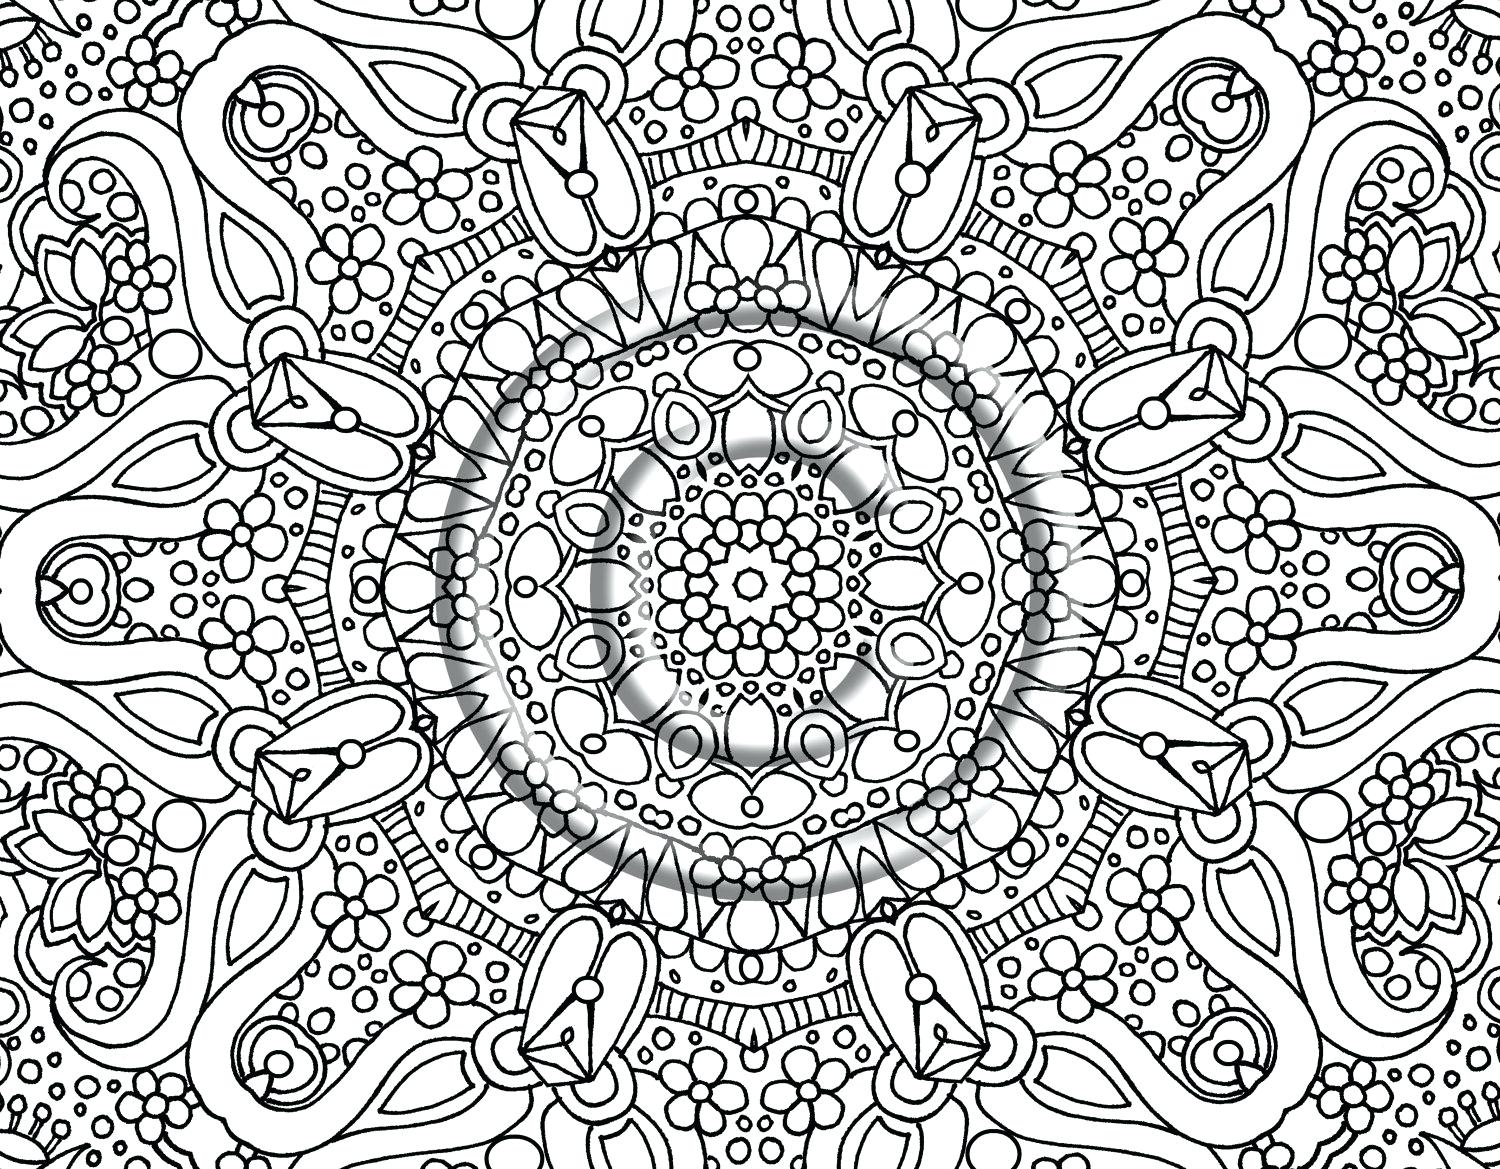 1500x1169 Coloring Coloring Pages Abstract Designs